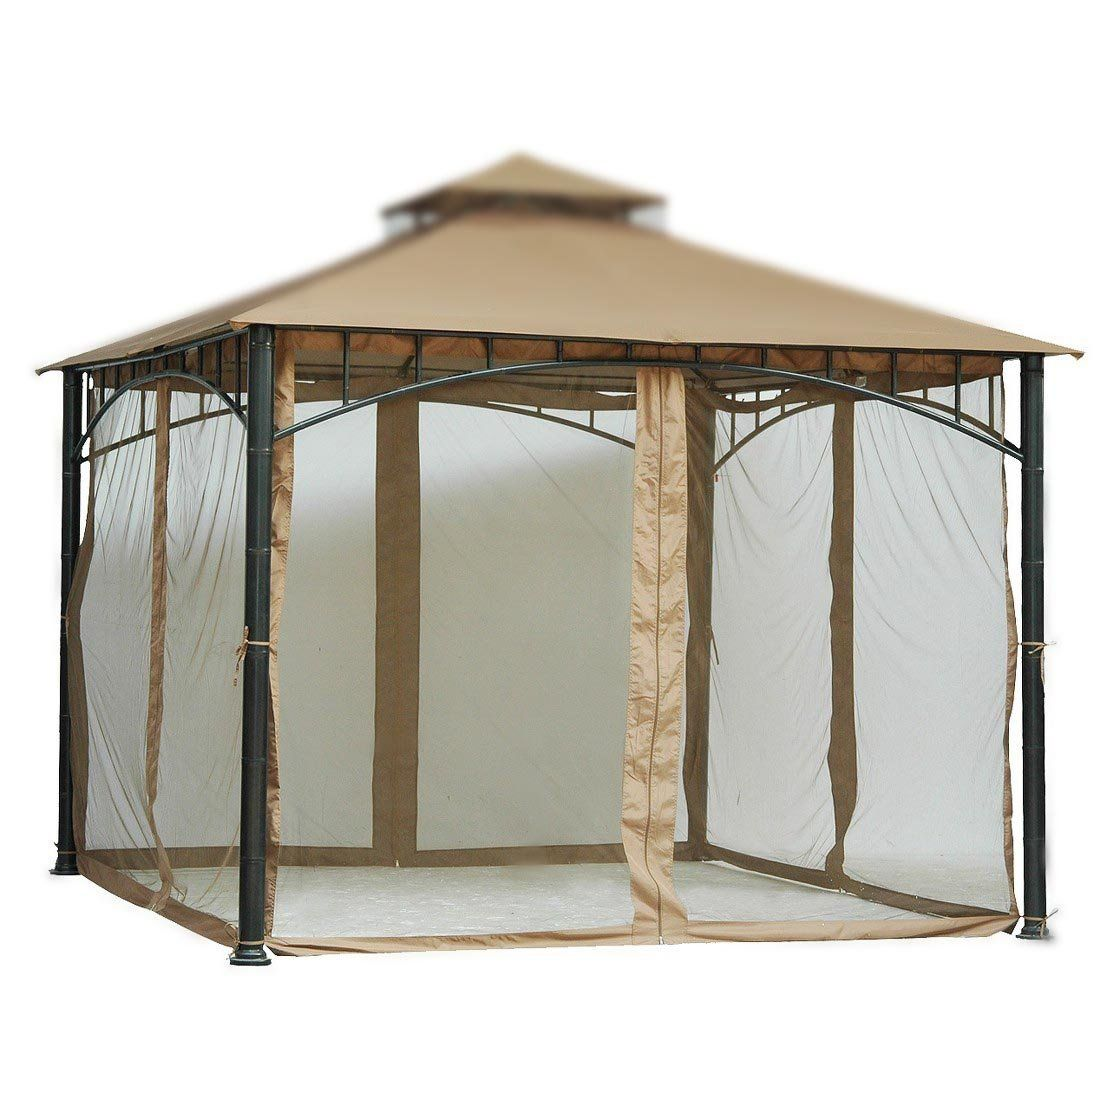 Camping Tents 7 Ft 84 In Tall Beige Mosquito Net Only For 10x10 Gazebo W Velcro Straps Product Sku Ga01005 Remarkabl Gazebo Screen House Diy Canopy